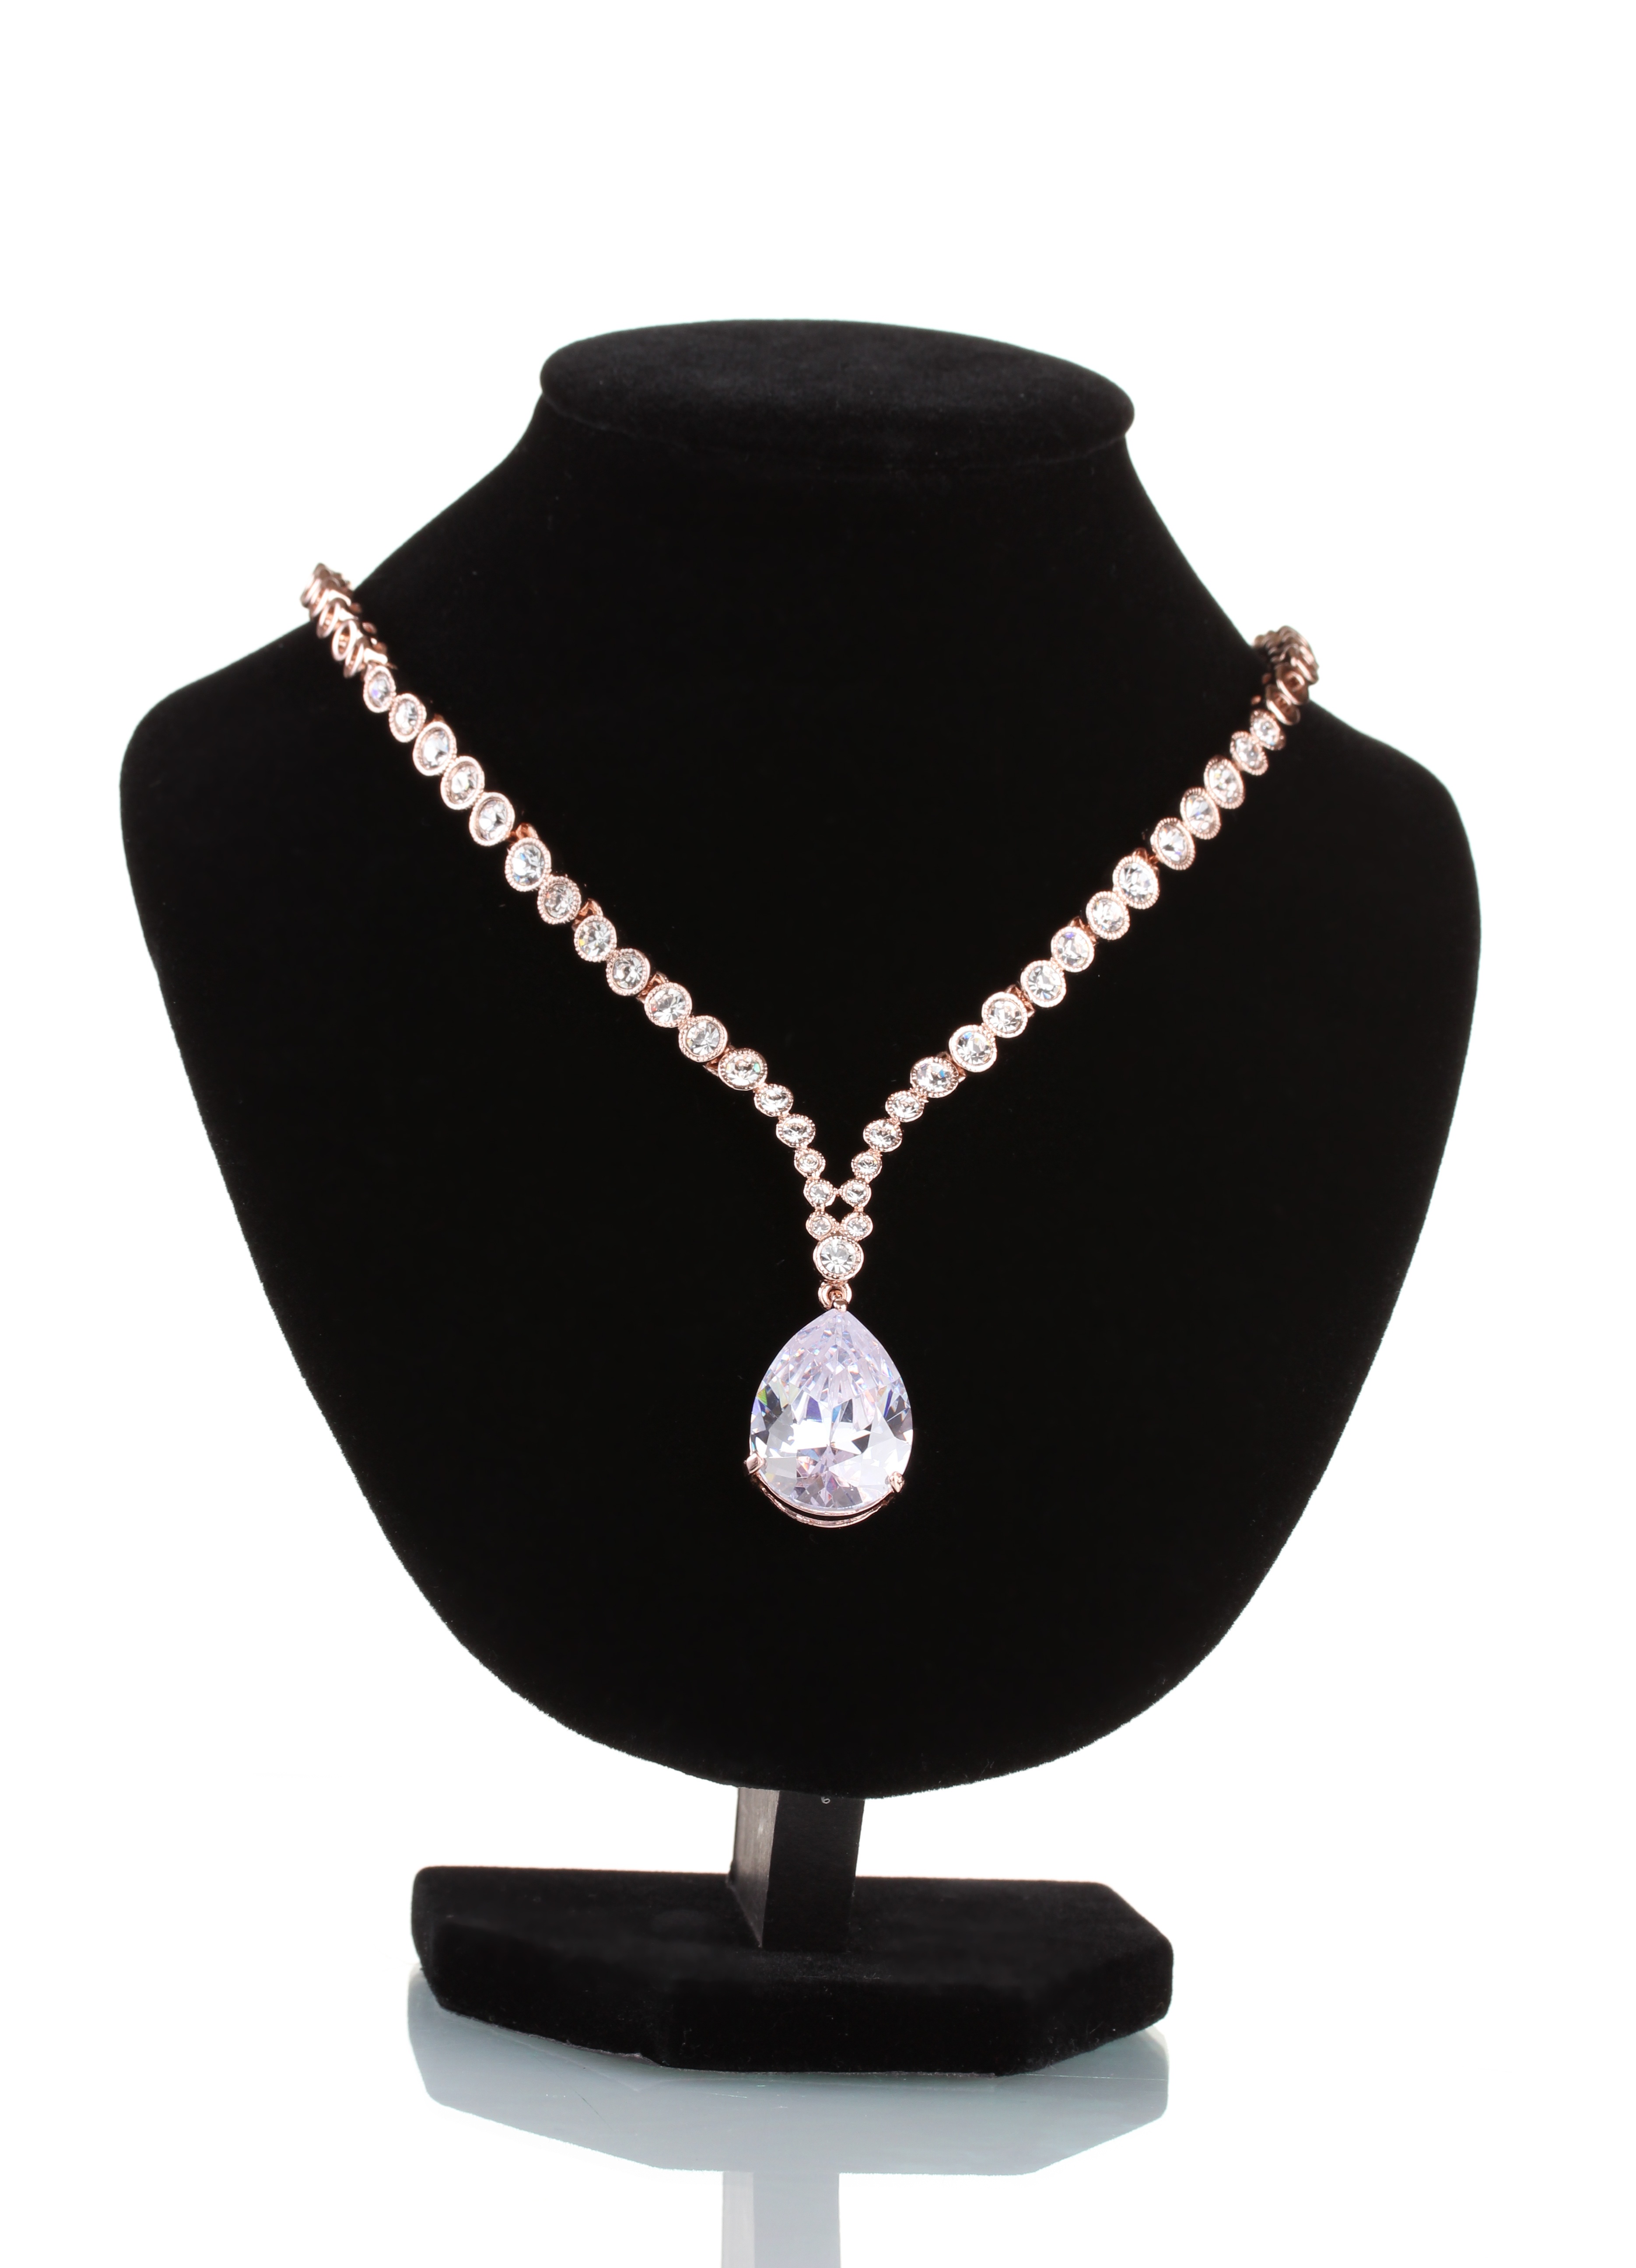 Sotheby S To Sell 33ct Flawless Diamond Necklace Dda